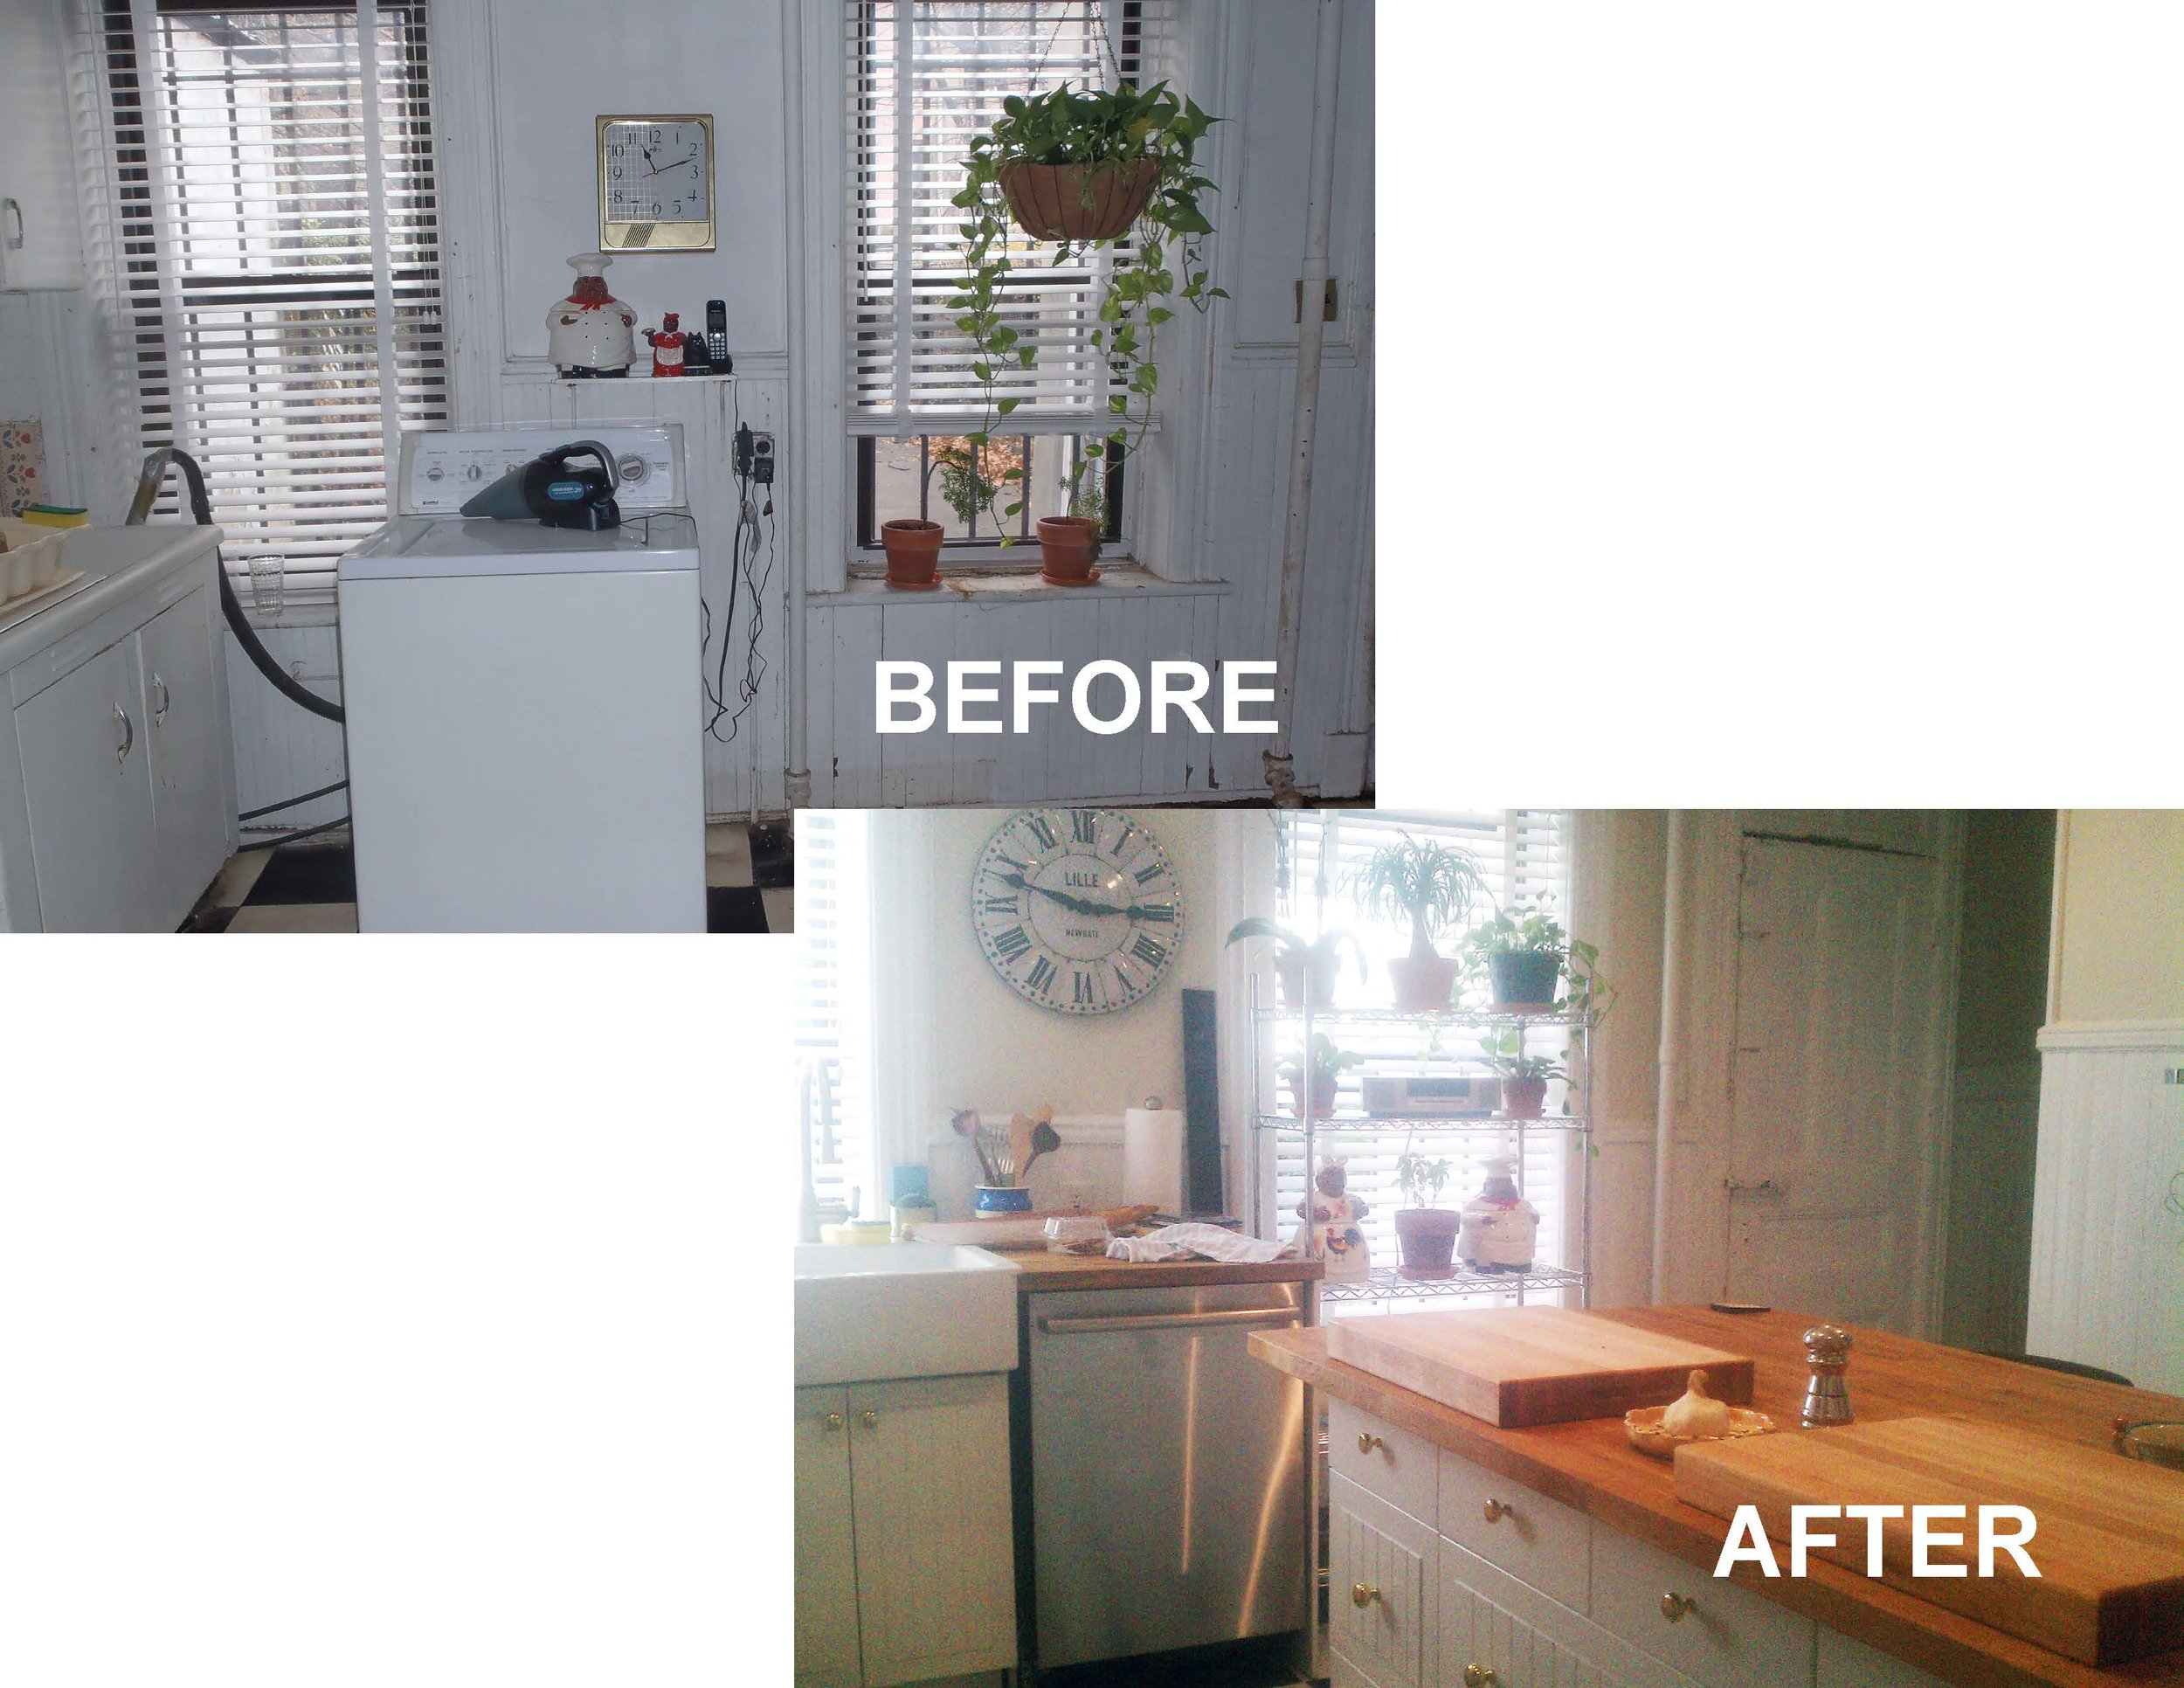 BEFORE AND AFTER PHOTOS_Page_2.jpg